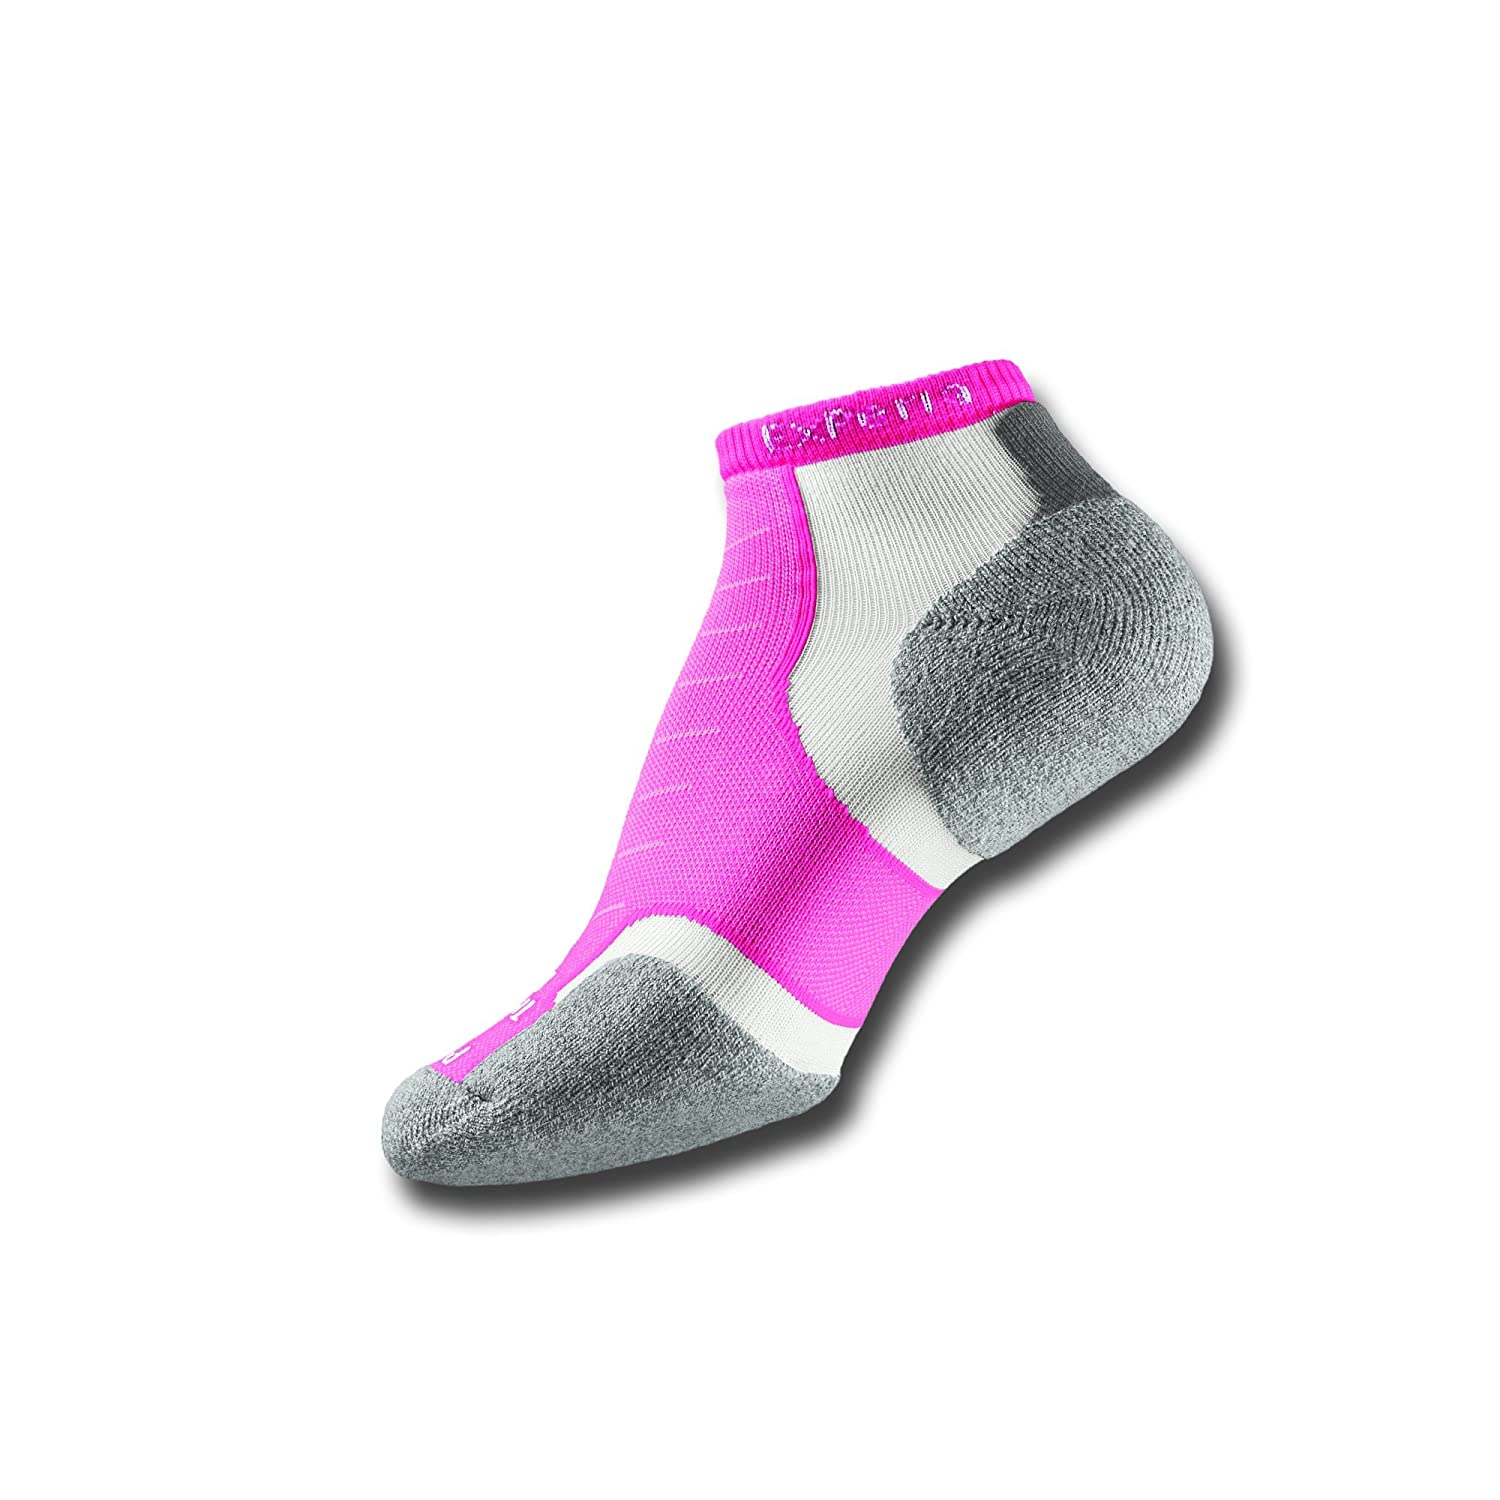 Men's - Women's Thin Padded Running Low-Cut Socks